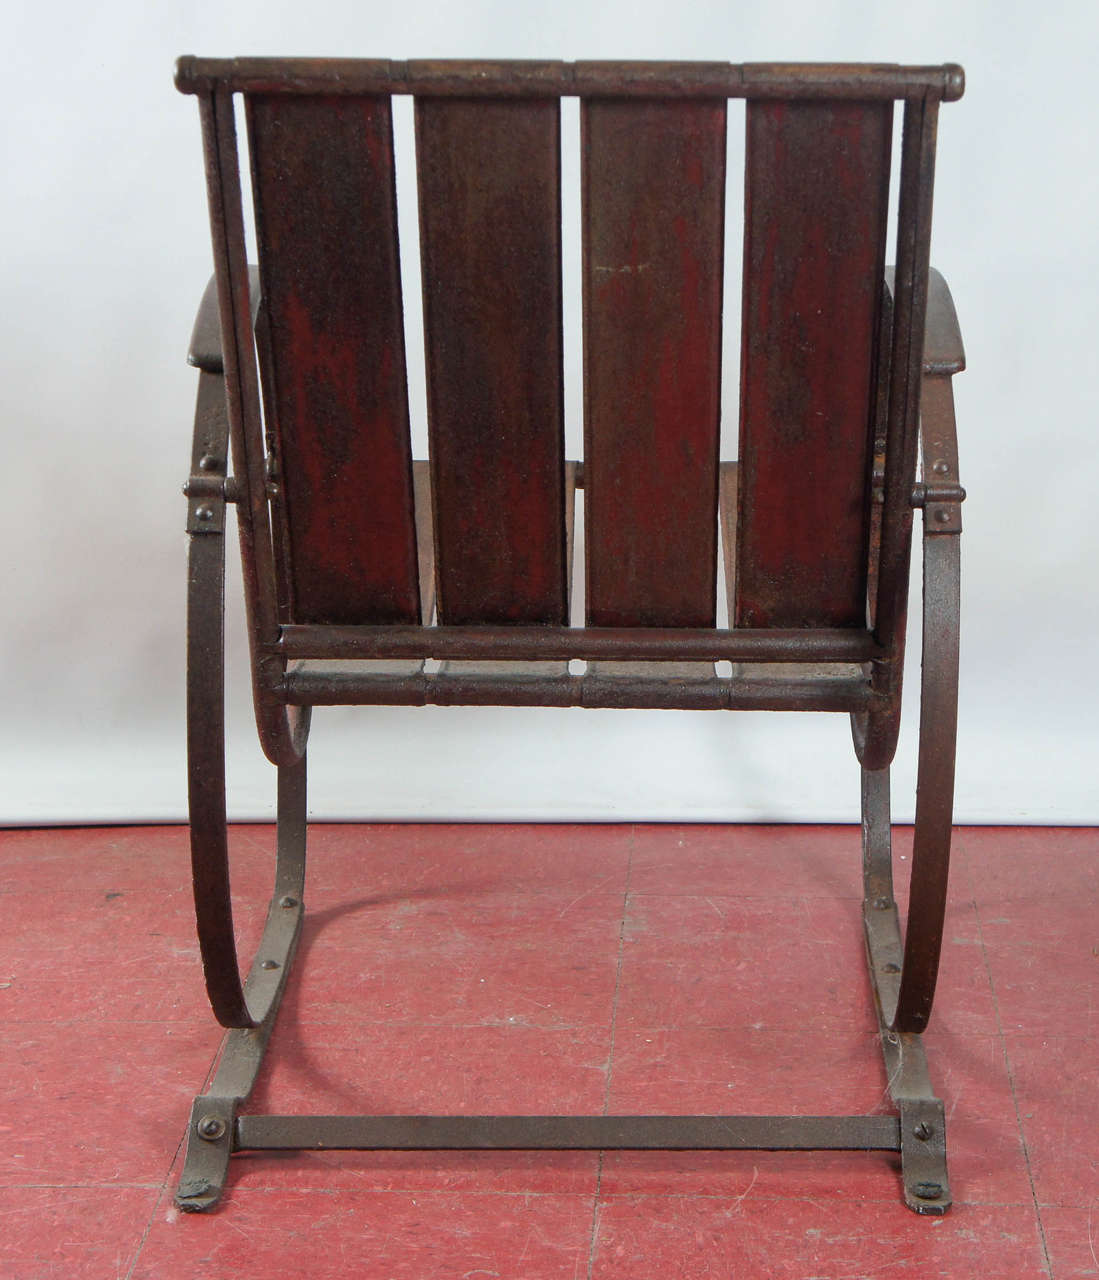 Slatted Iron Garden Chair At 1stdibs